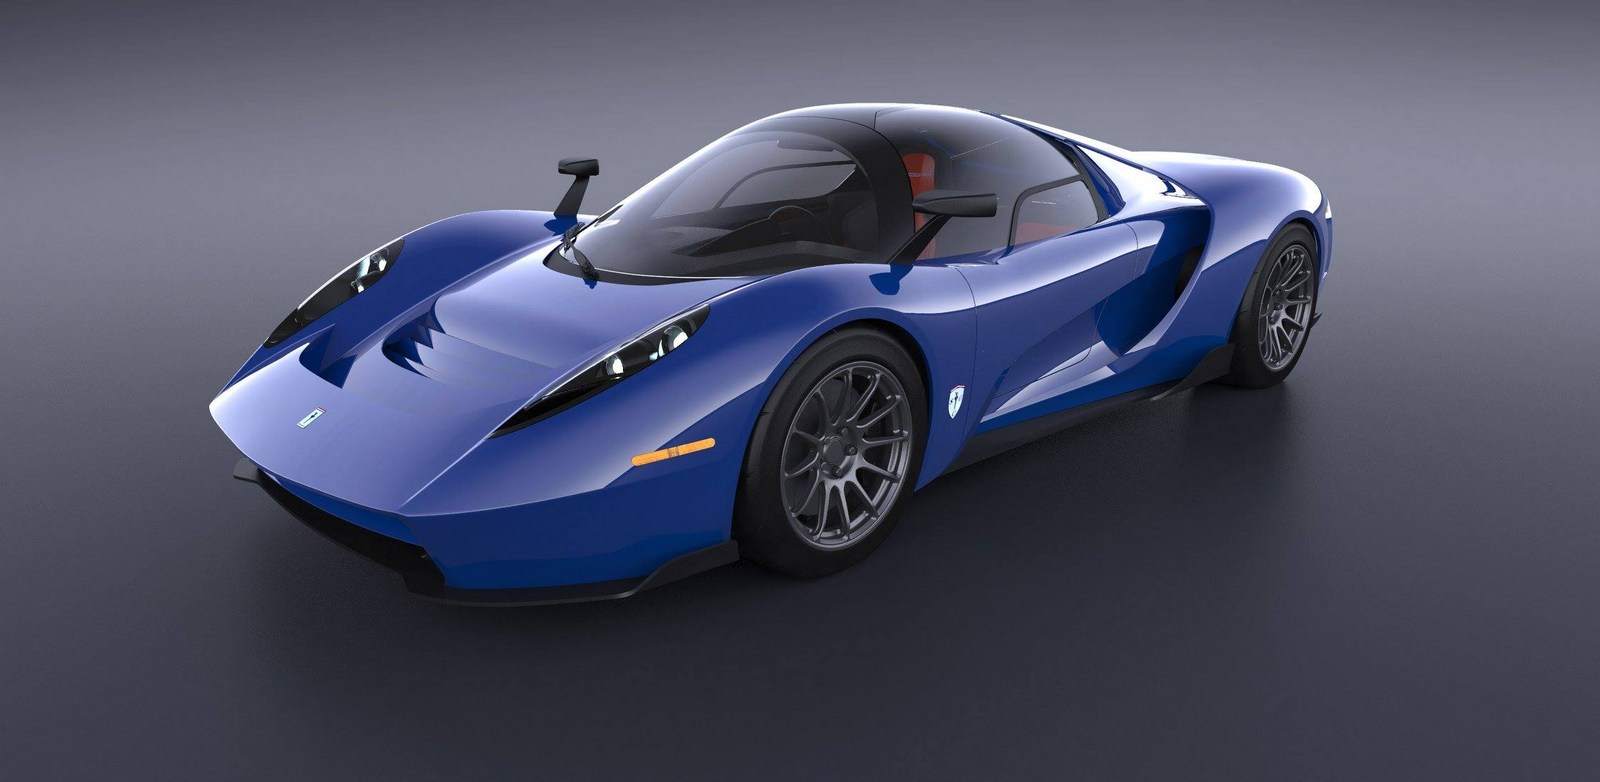 Honda Supercar Price >> SCG 004S Supercar Unveiled With 650 HP And $400K Price Tag | Carscoops